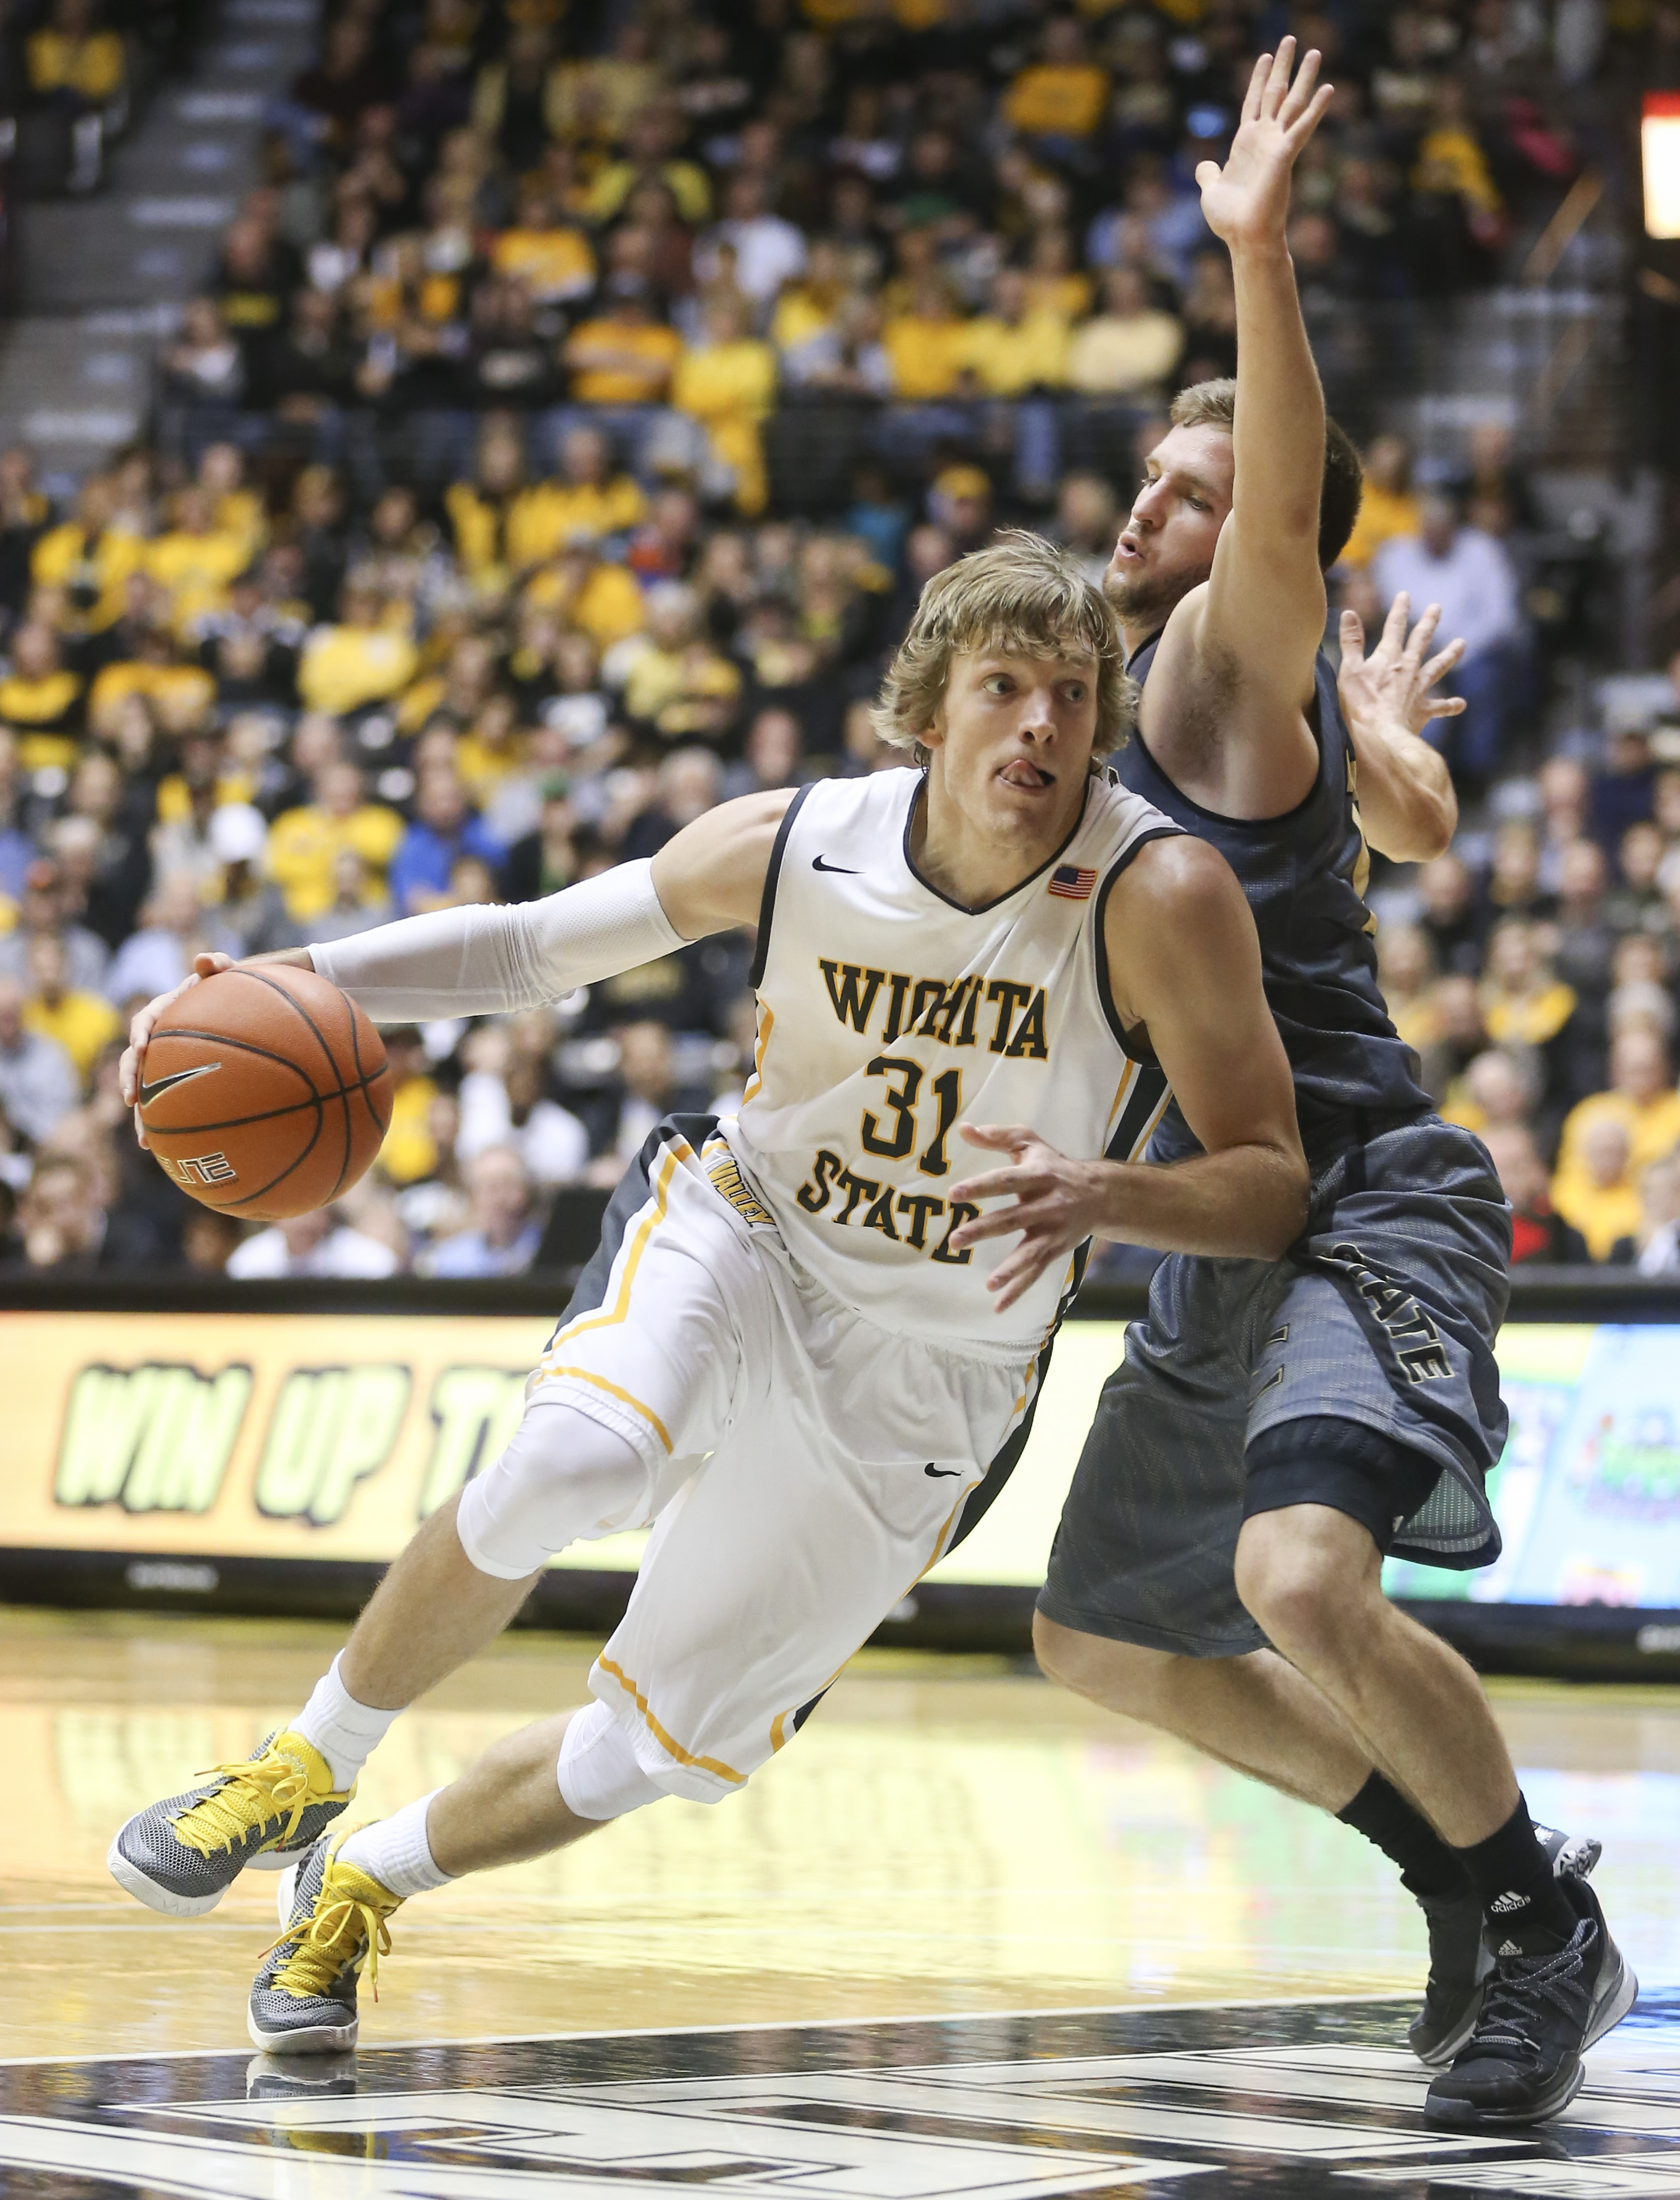 Wichita State guard Ron Baker drives to the basket against  Emporia State guard Micah Swank during the second half of an NCAA college basketball game in Wichita, Kan., on Saturday, Nov. 21, 2015. (Travis Heying/The Wichita Eagle via AP)